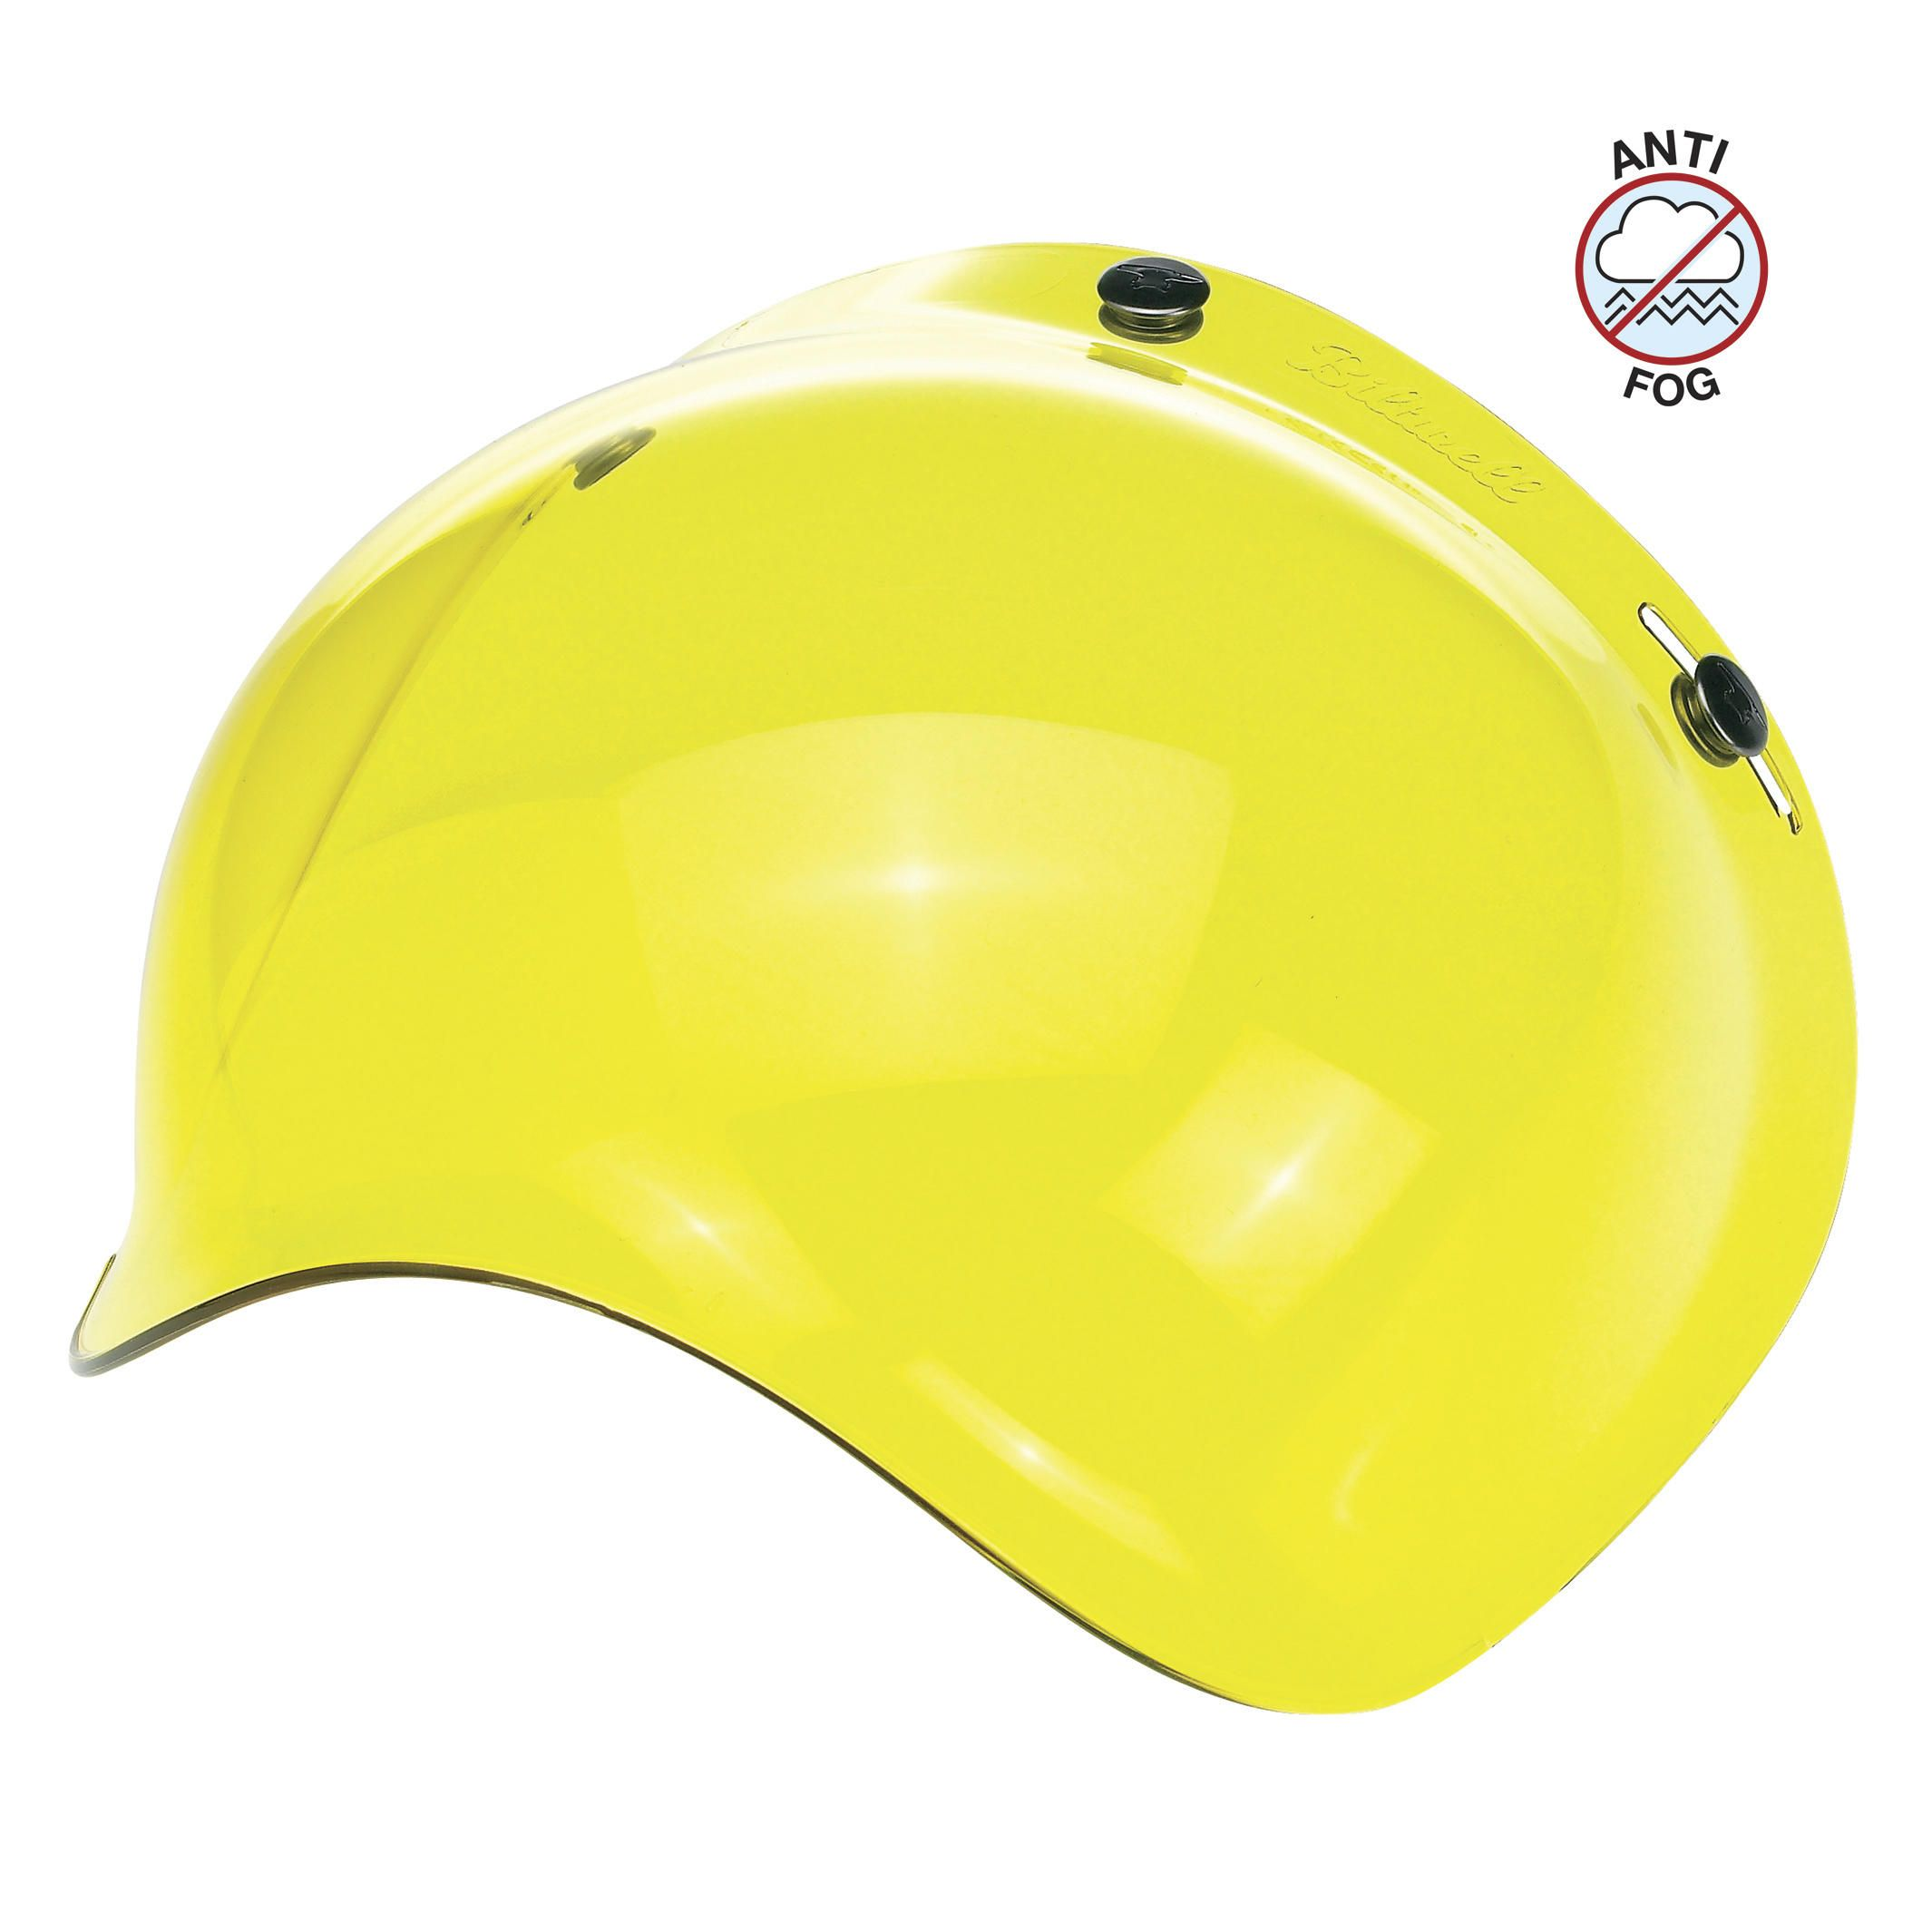 Ecran casque Biltwell Inc BUBBLE YELLOW - GRINGO